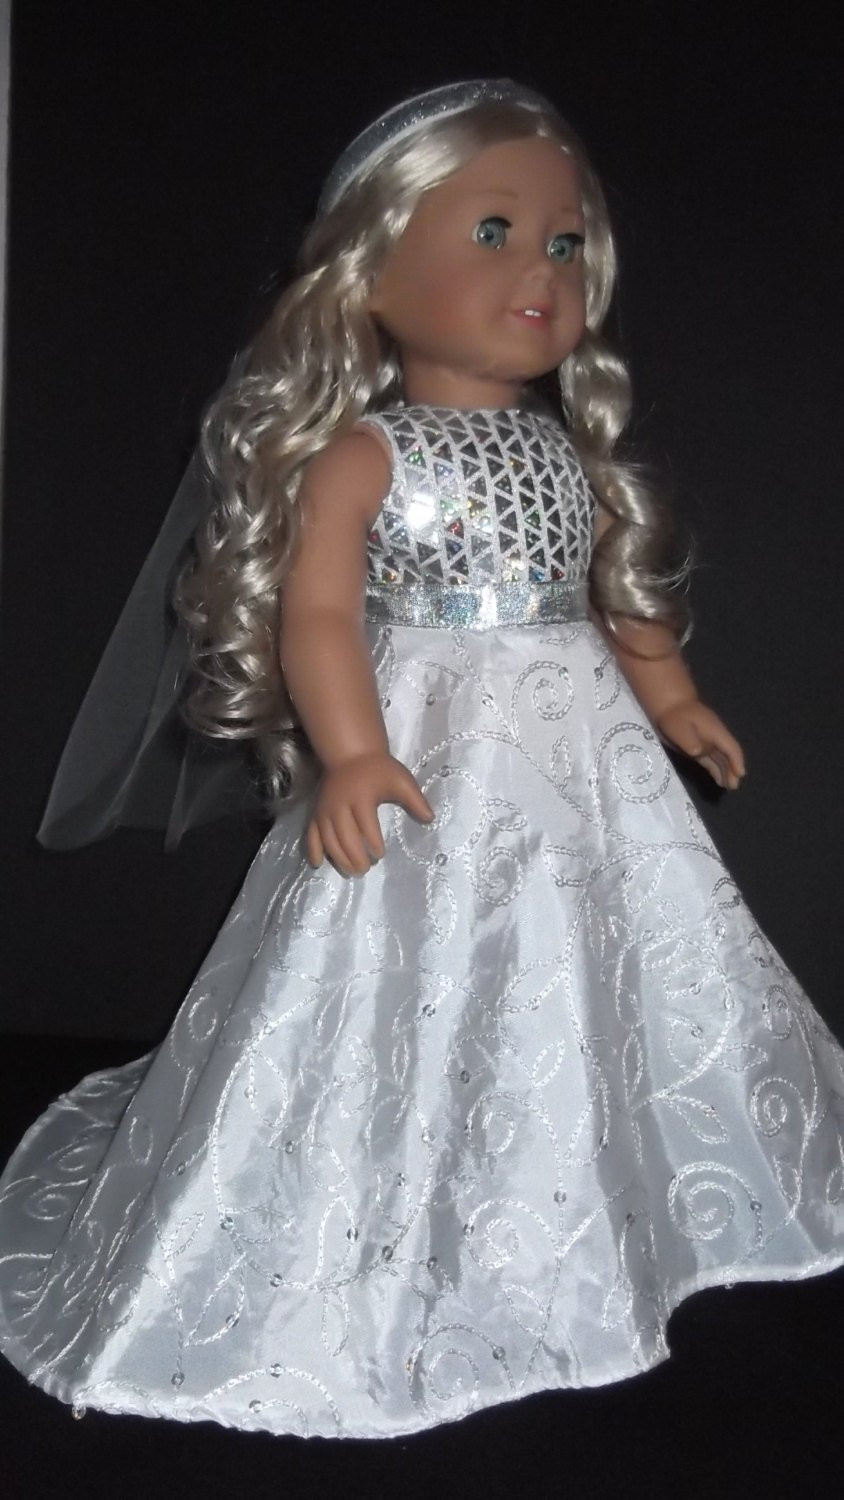 Best Of American Girl Doll Clothes Wedding Gown and Veil 257 American Girl Doll Wedding Dress Of Beautiful American Girl Doll Wedding Dress Satin and Silver American Girl Doll Wedding Dress